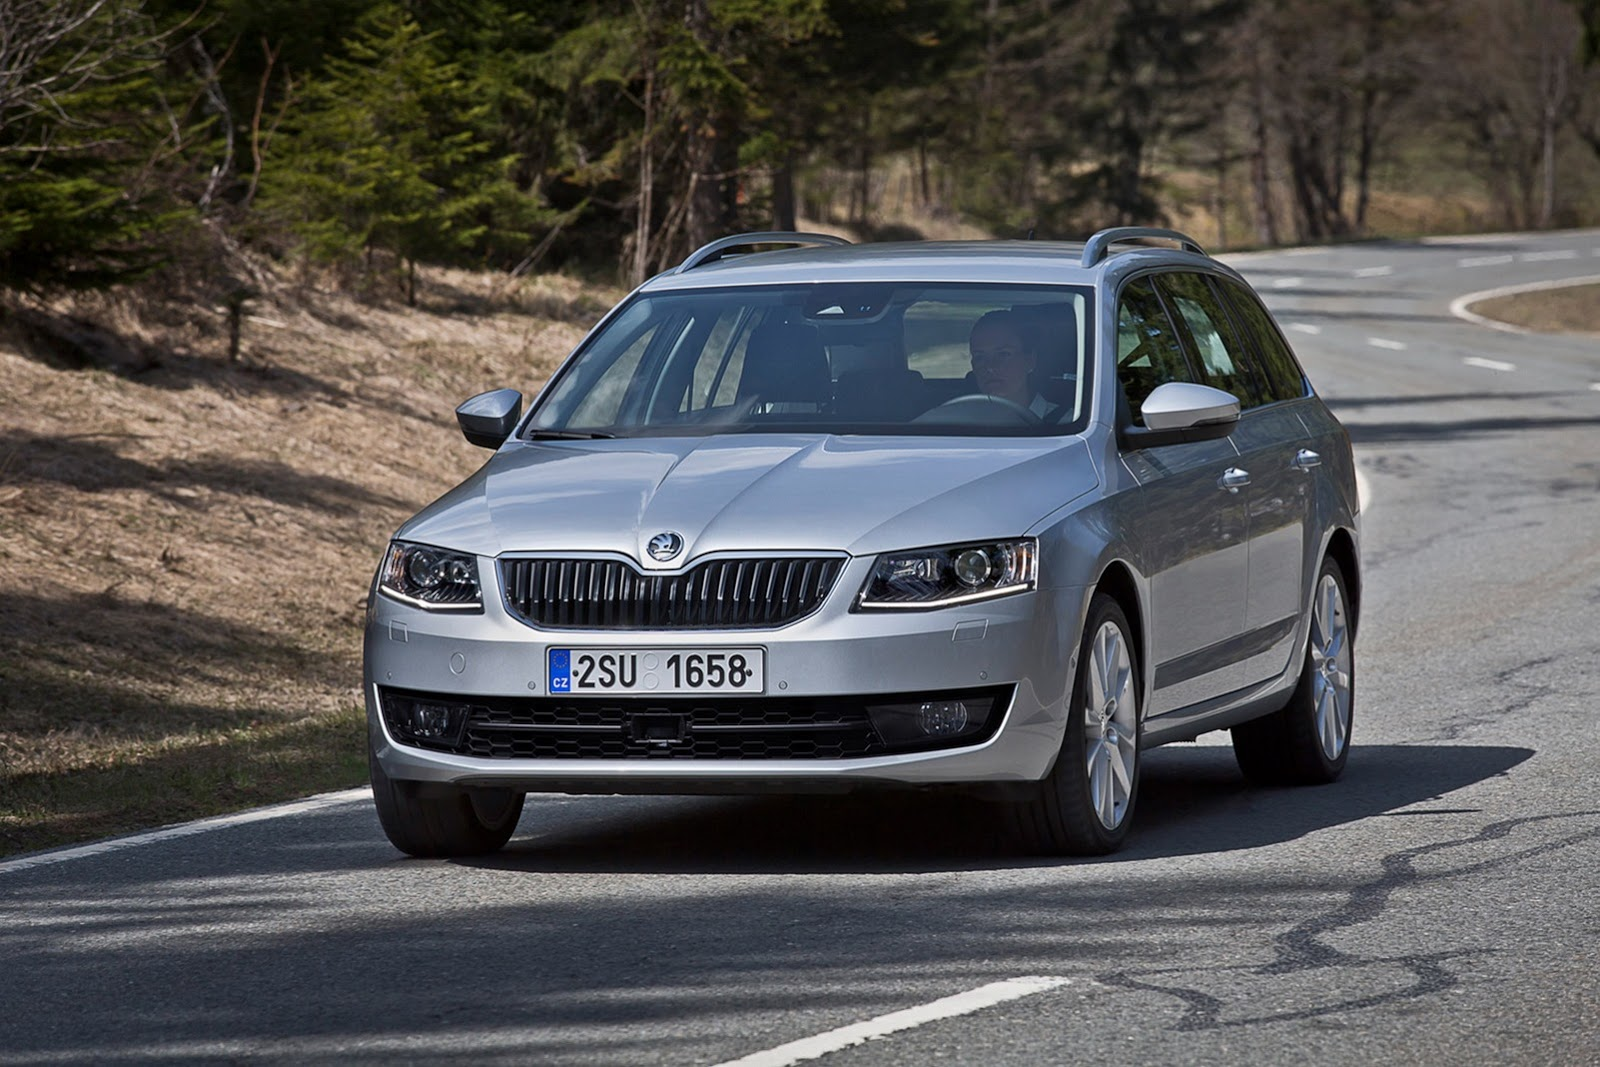 Skoda Octavia Combi 4x4 Revealed in New Images [Photo Gallery] - photo